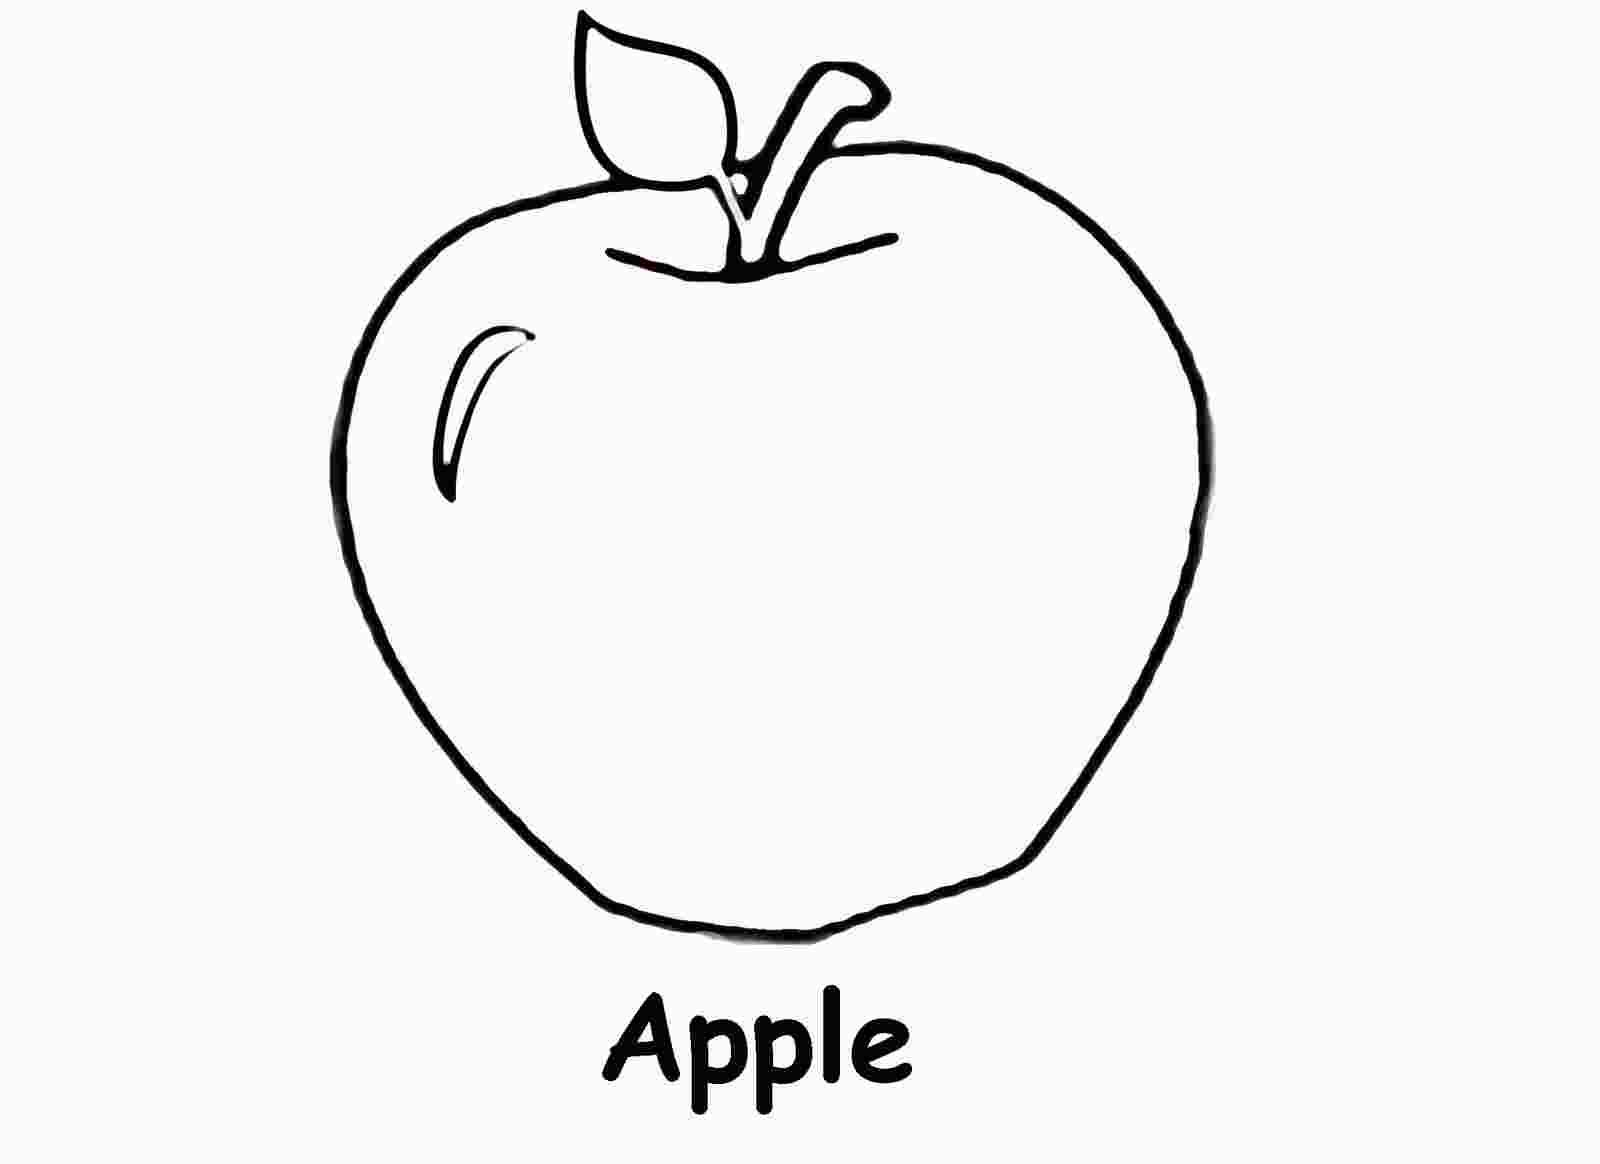 Coloring Apples Worksheet With Images